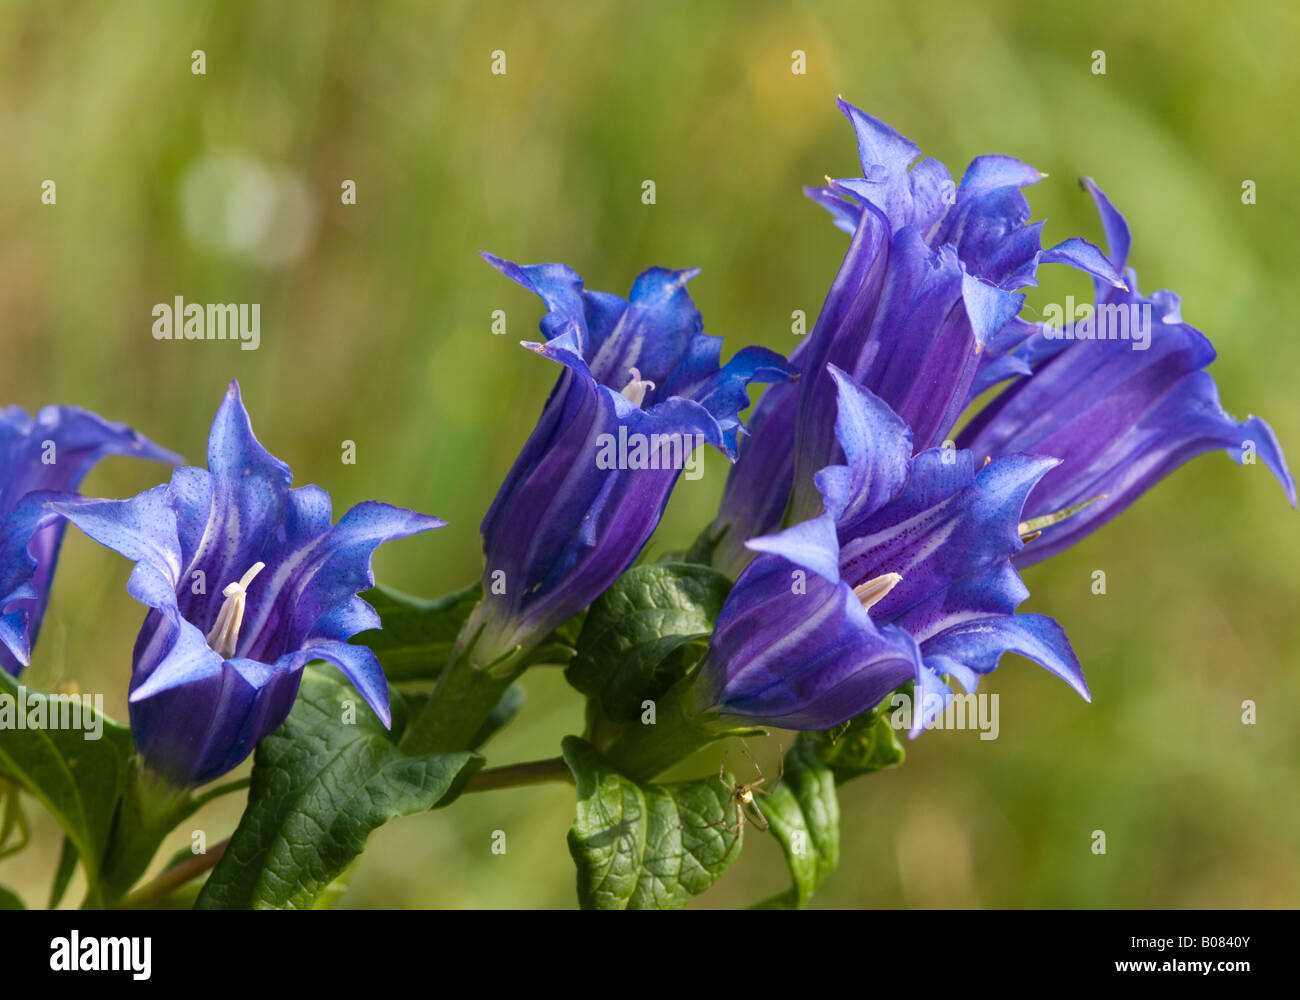 Willow Gentian (Gentiana asclepiadea), flowers - Stock Image